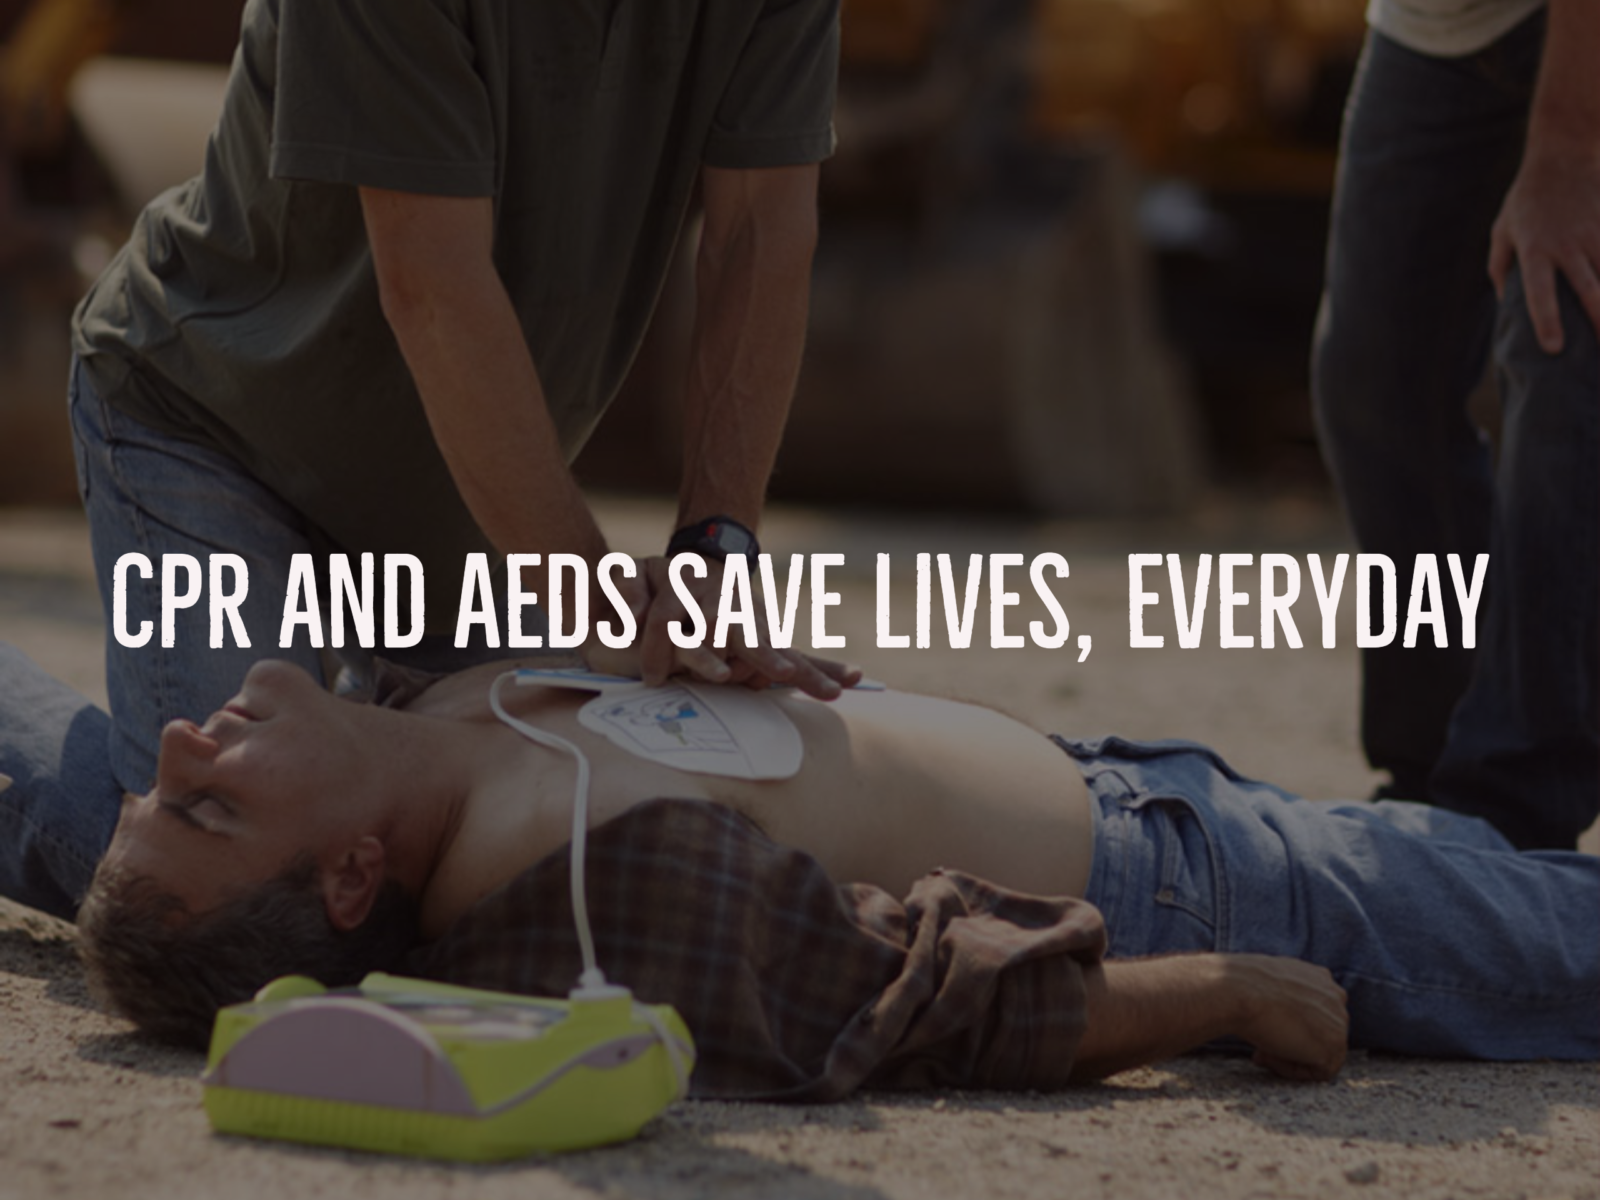 CPR and AEDs Save Lives